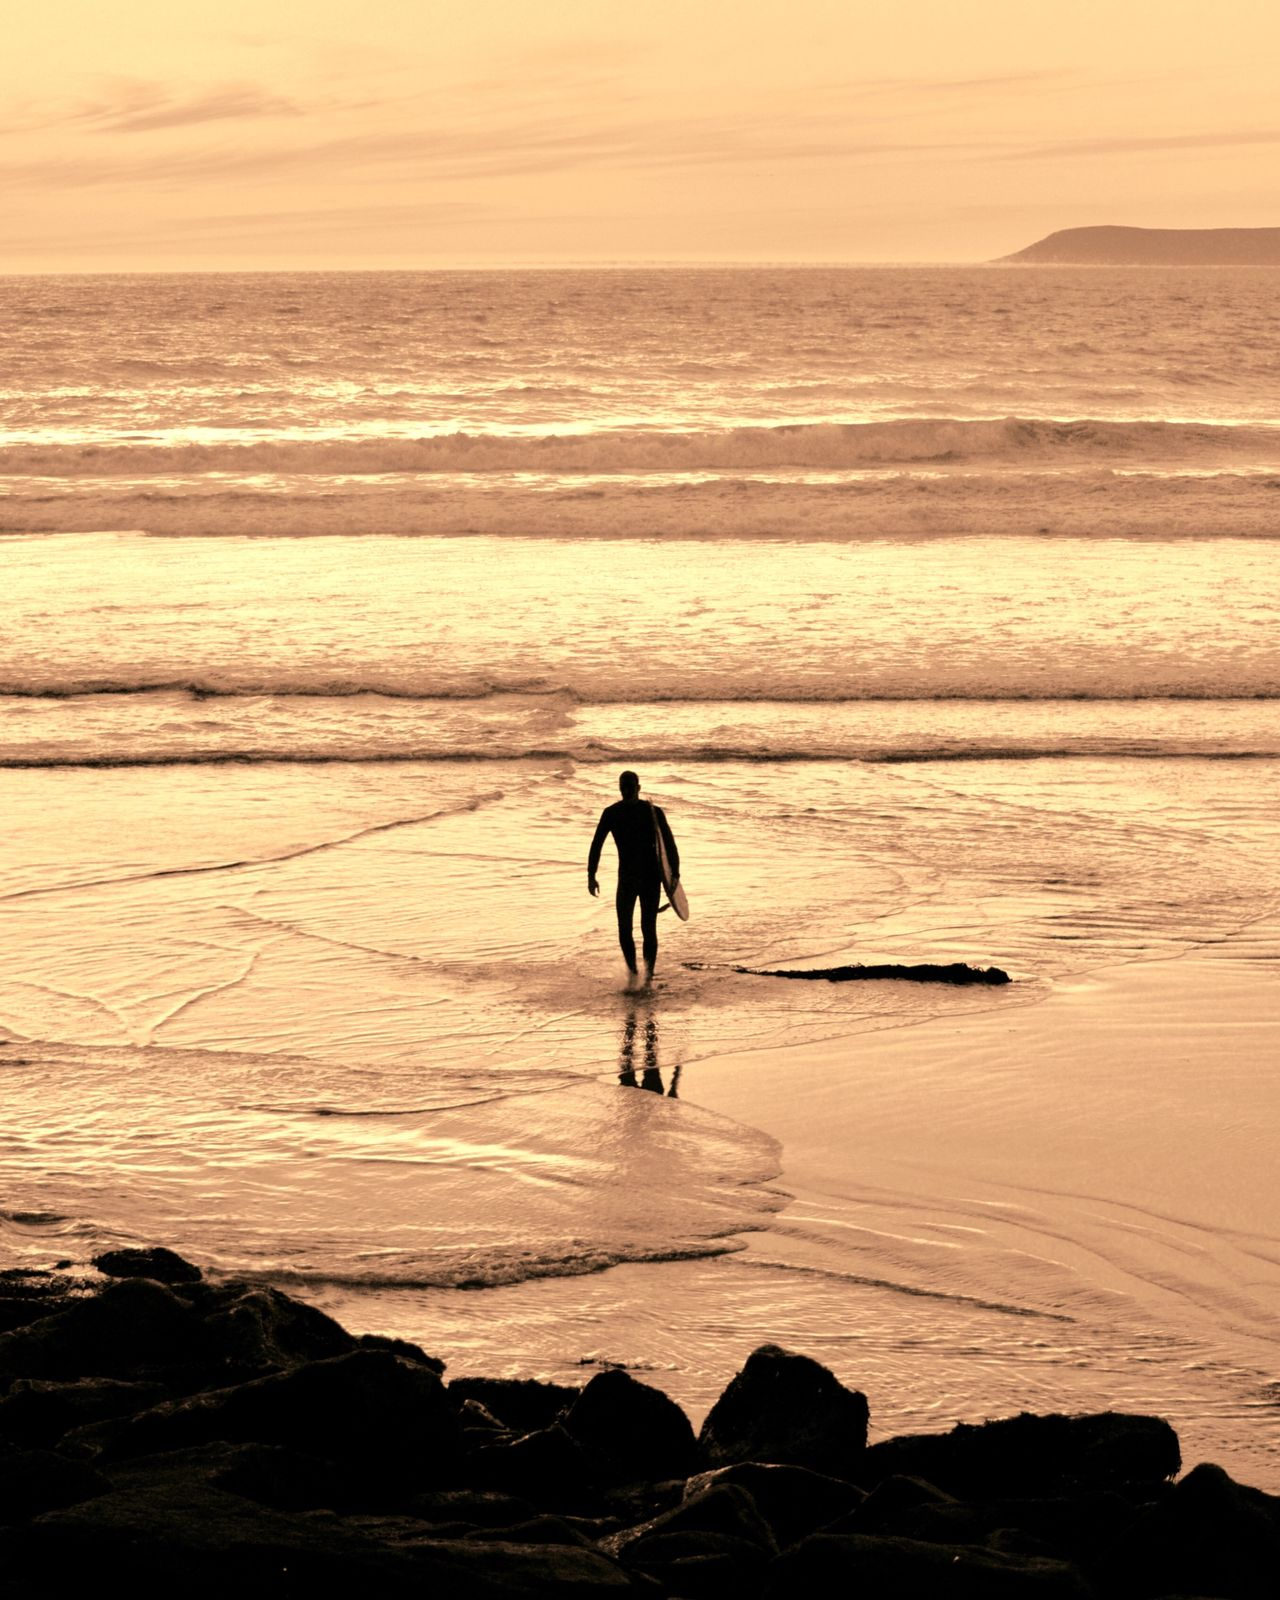 California Grown Sea Real People Sunset Beach Beauty In Nature Nature Wave Water Men Lifestyles Surfboard Sky Full Length Outdoors Leisure Activity One Person California Coast EyeEm Gallery EyeEm Best Shots Beauty In Nature Surfer California Surf Scenics Day